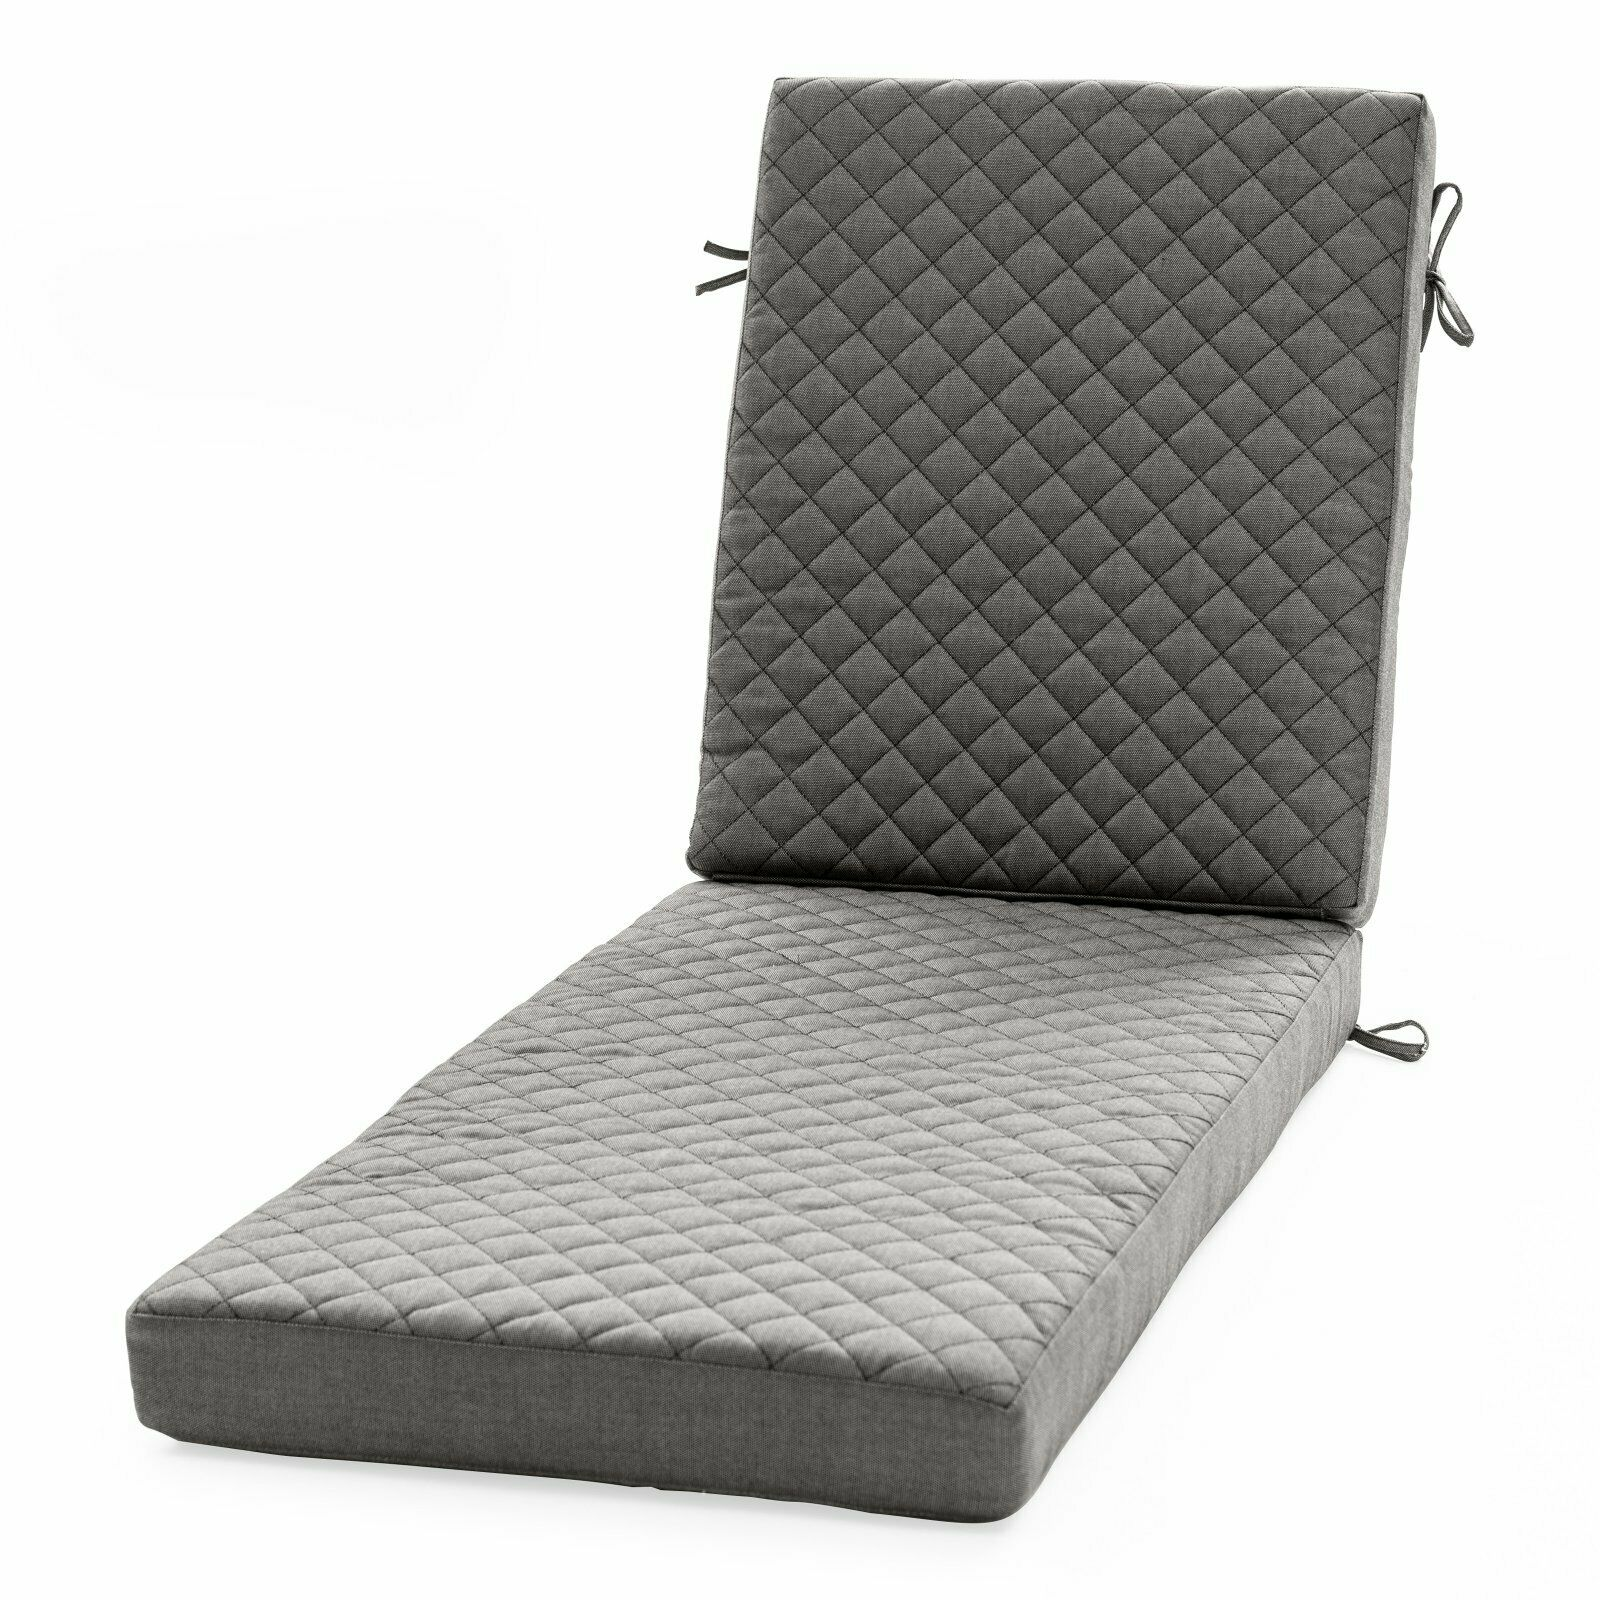 Charcoal Quilted Diamond Texture Outdoor Patio Chaise Lounge Cushion Pad Lounger